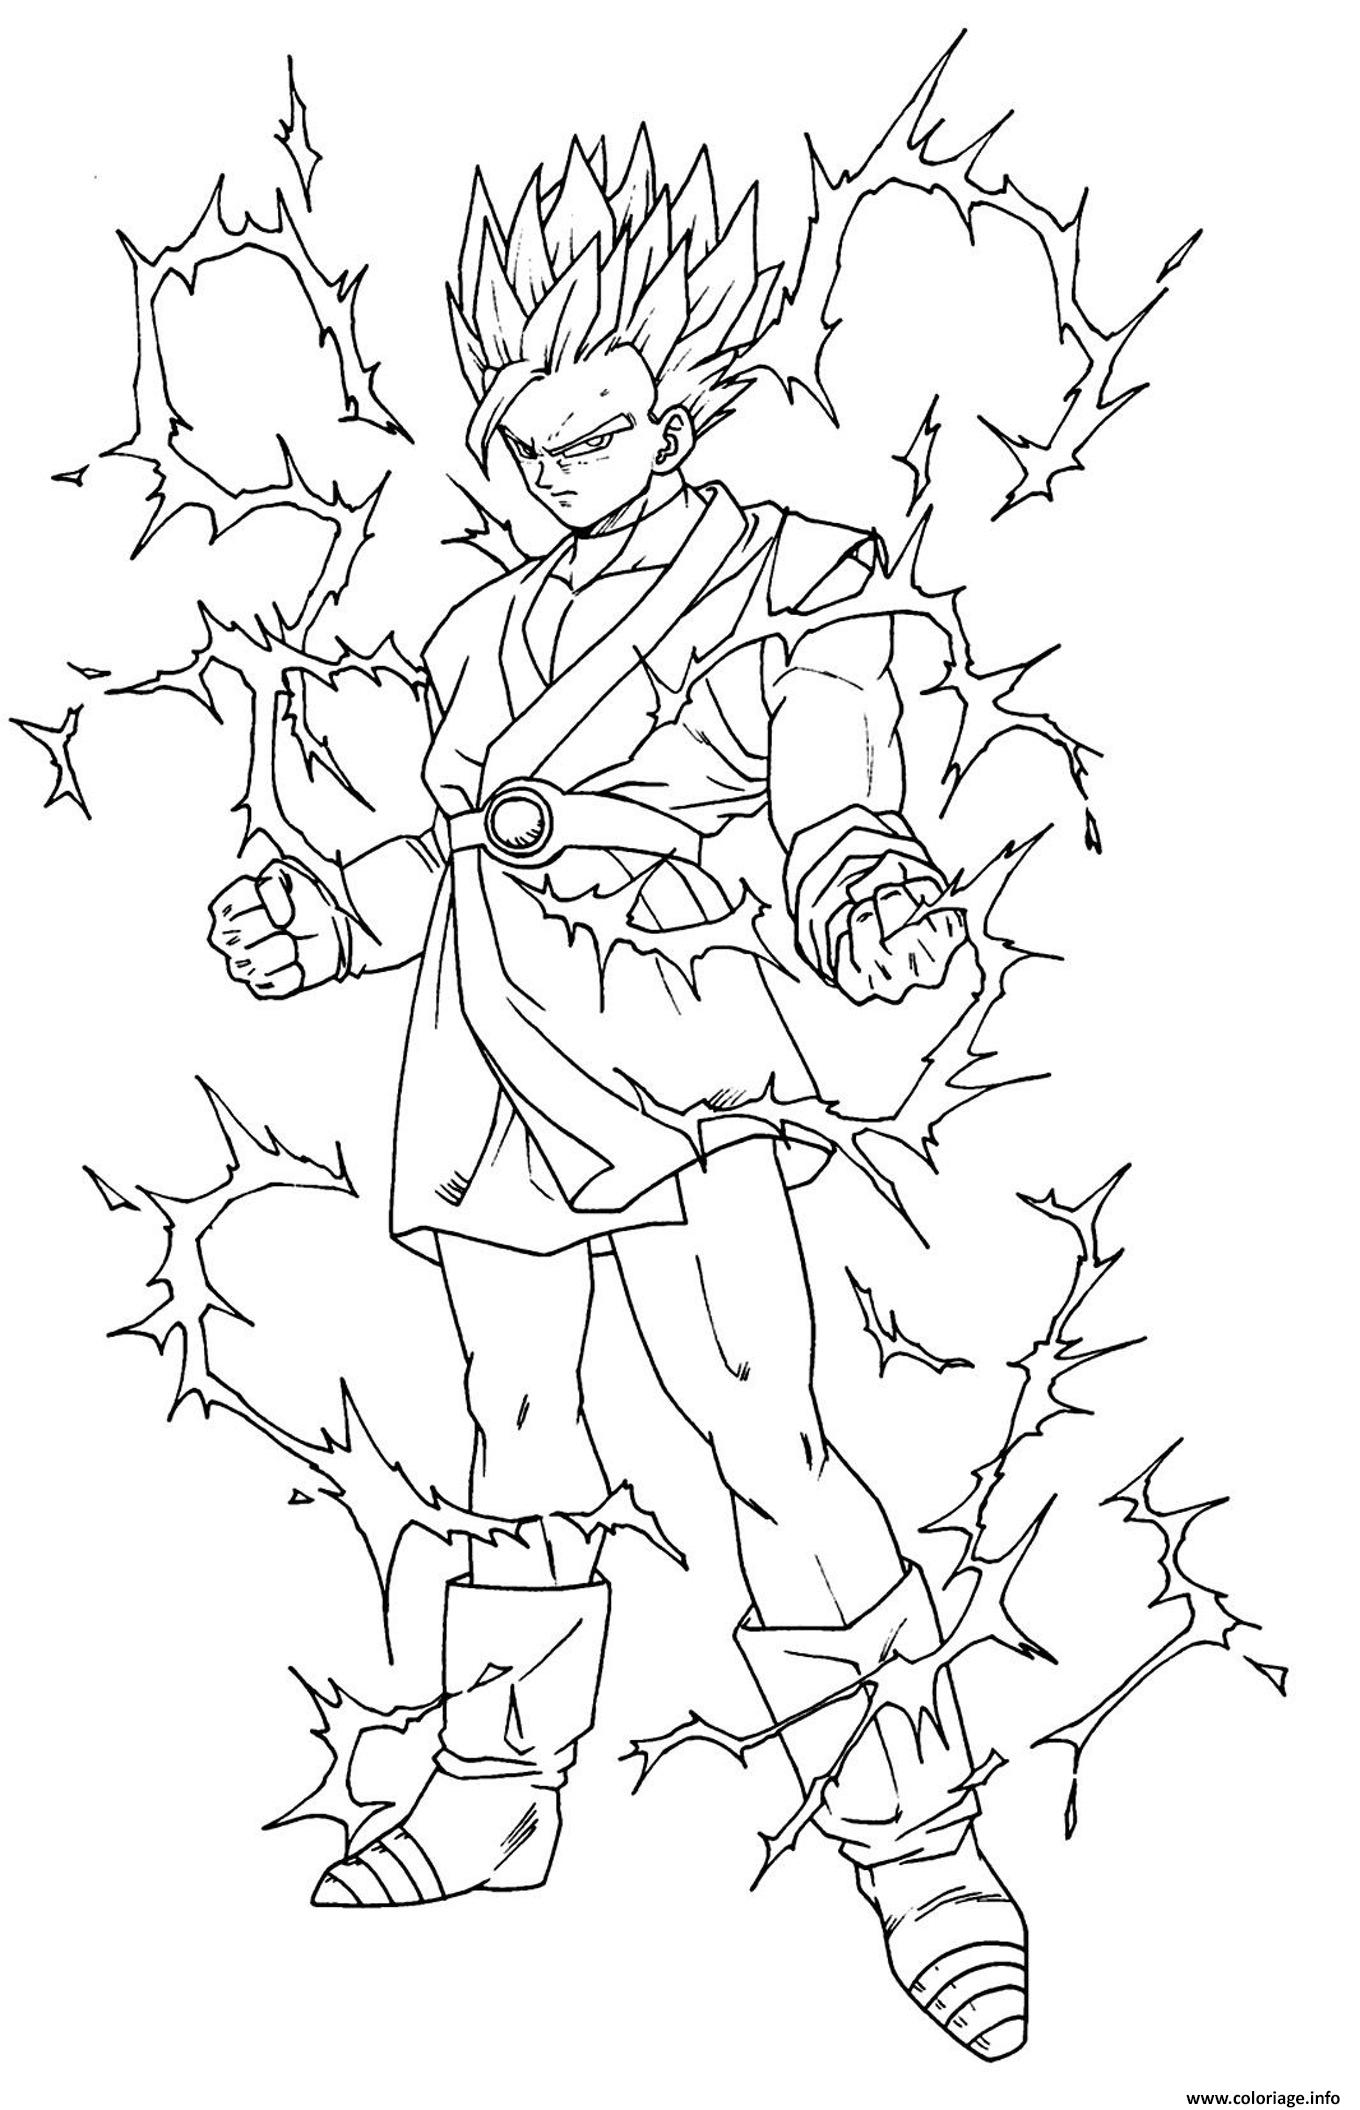 Beau Coloriage Dragon Ball Z Sangoku Super Sayen 4 A